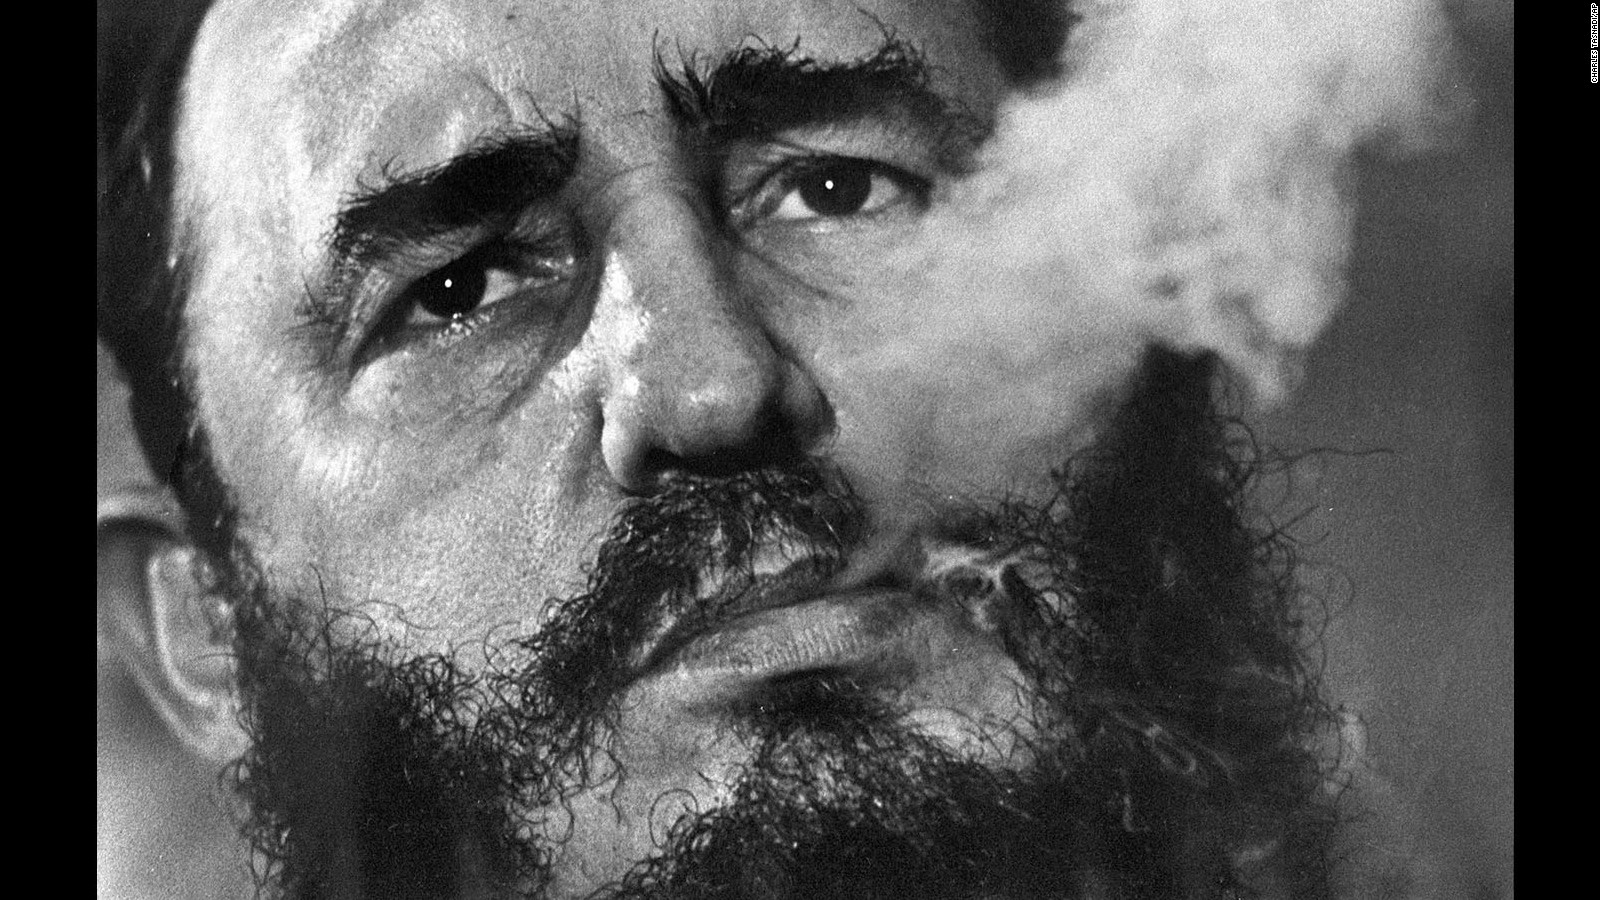 Former Cuban leader Fidel Castro has died at age 90, Cuban state media reported